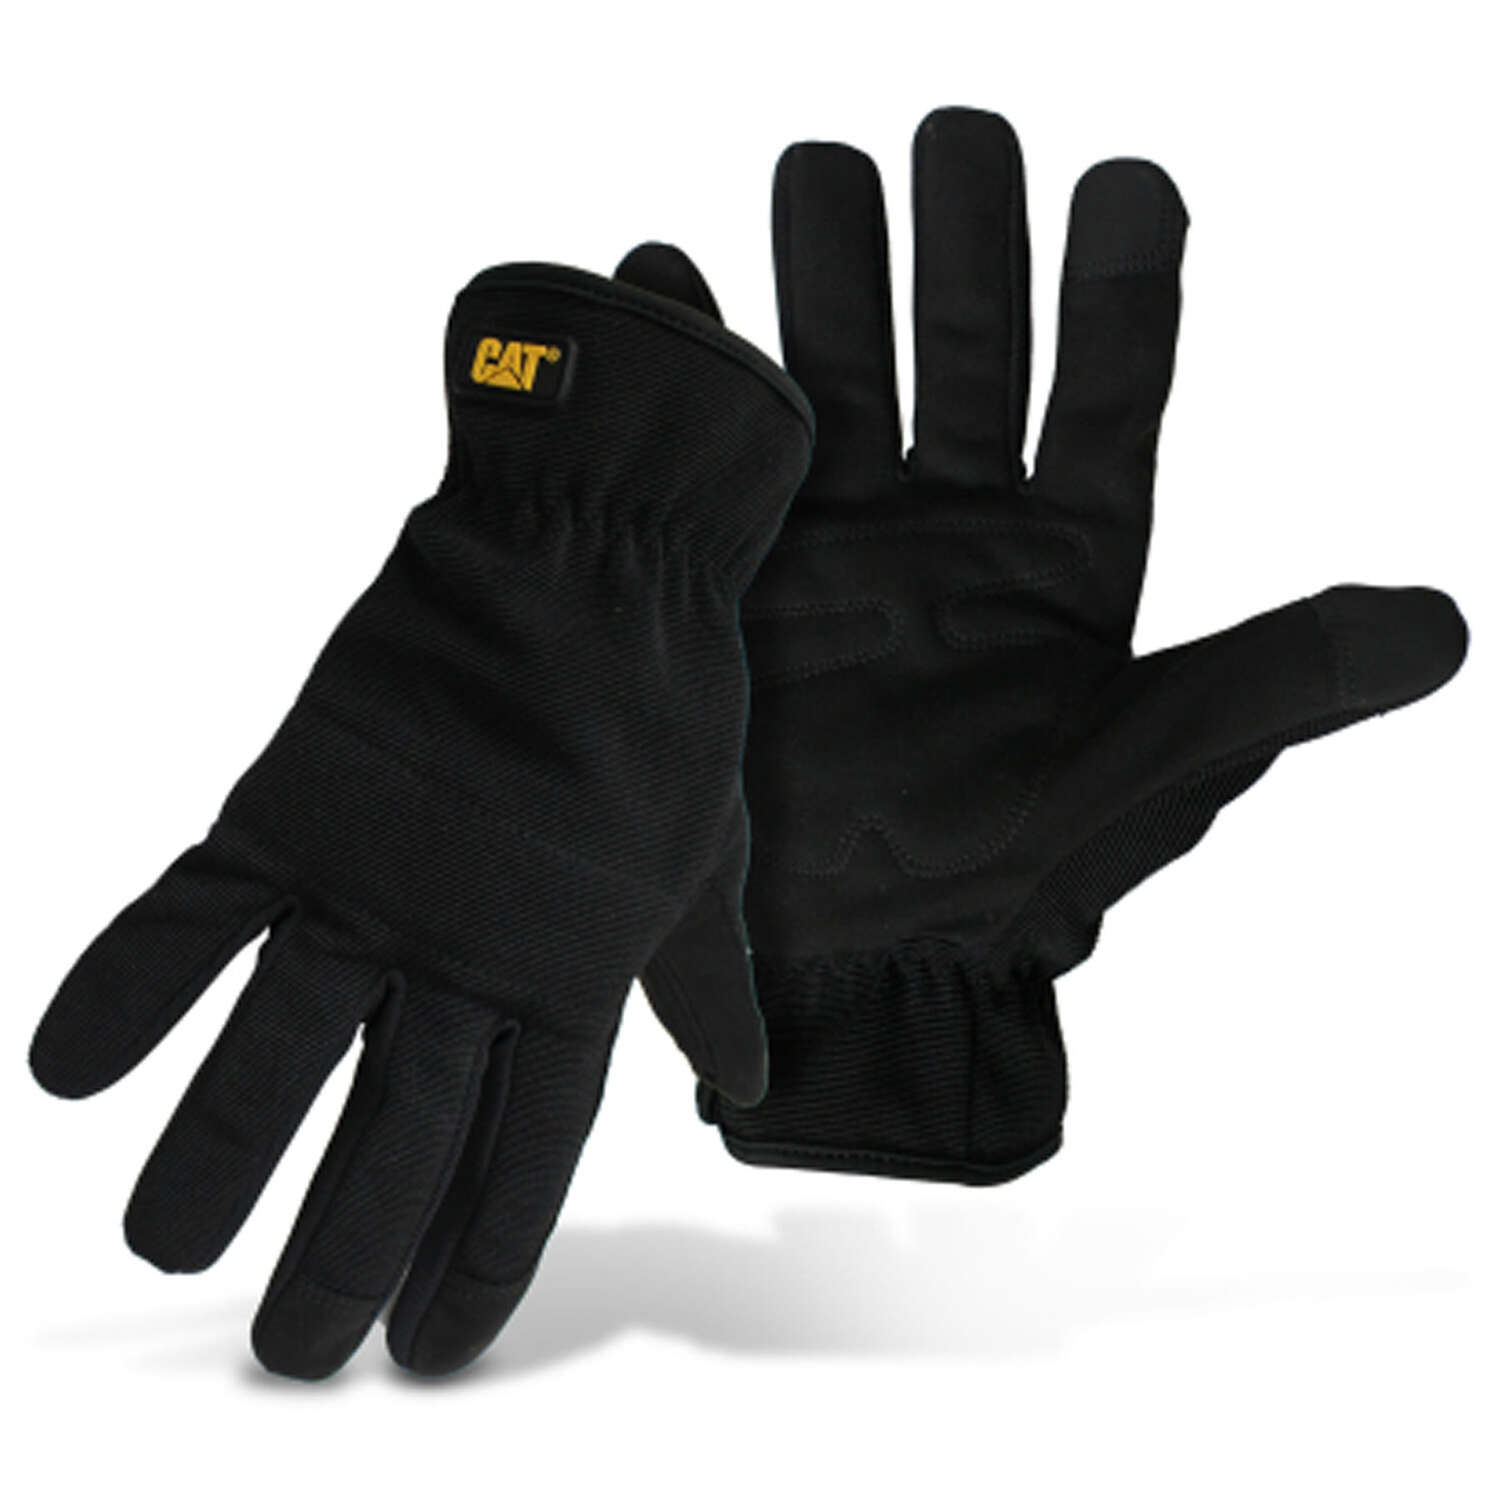 CAT Pro Series Men's Outdoor Utility Gloves Black XL 1 pair